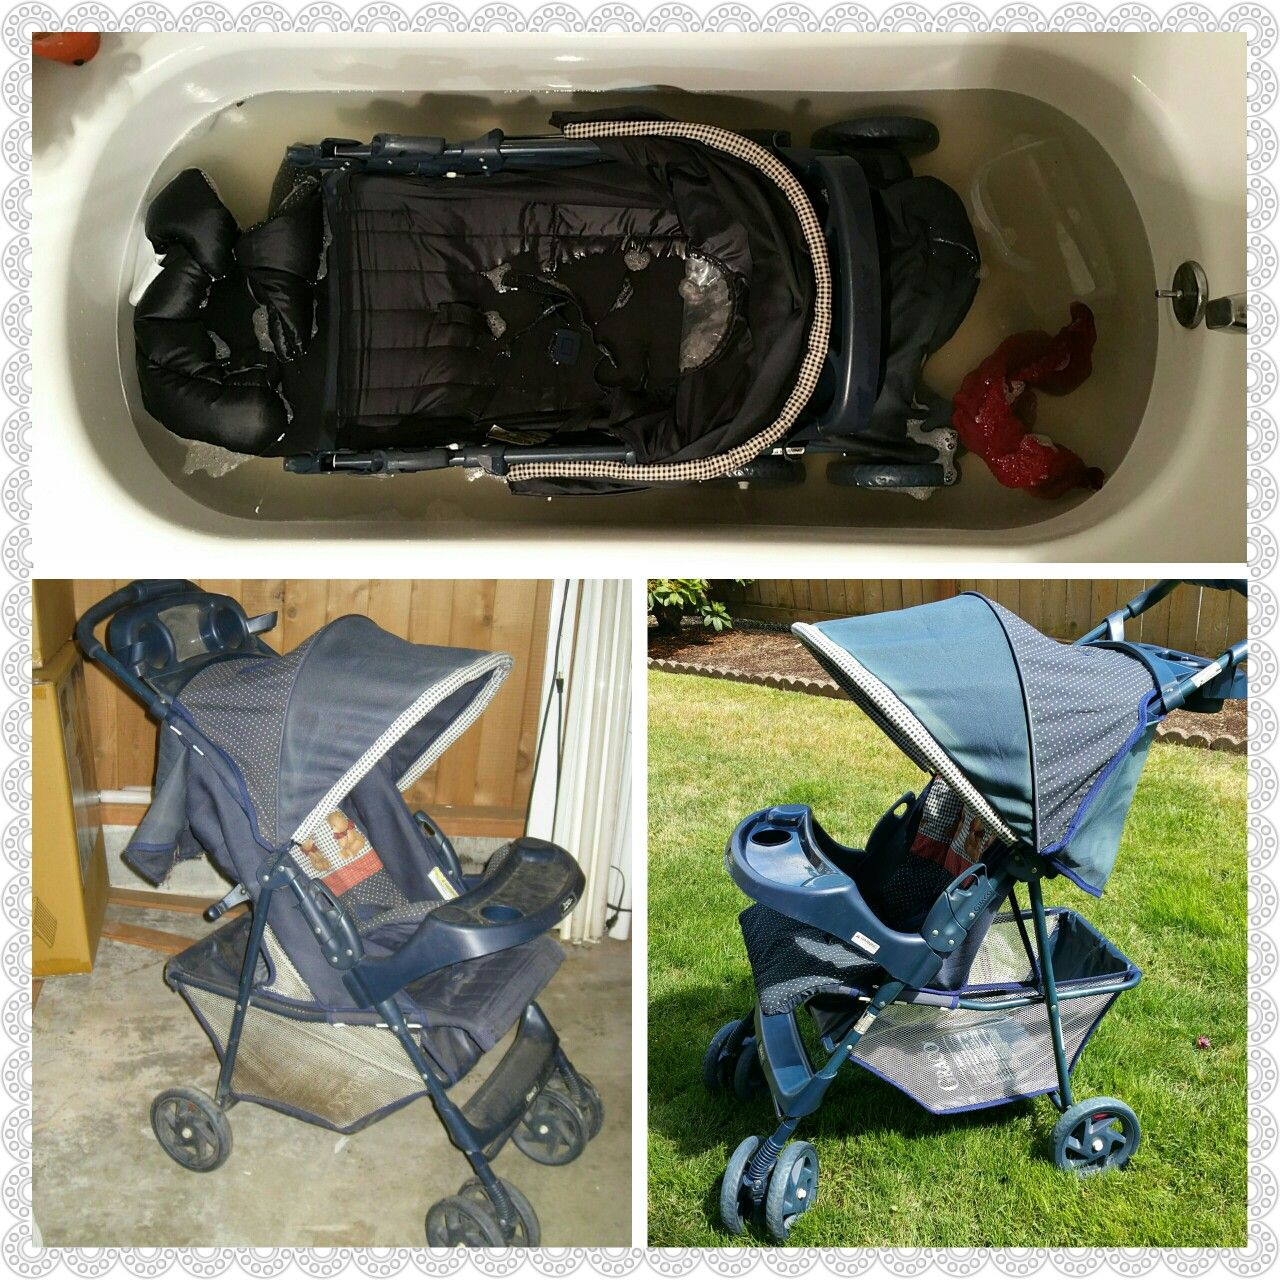 Cleaning Stroller. Basket was stained and filthy from being stored ...